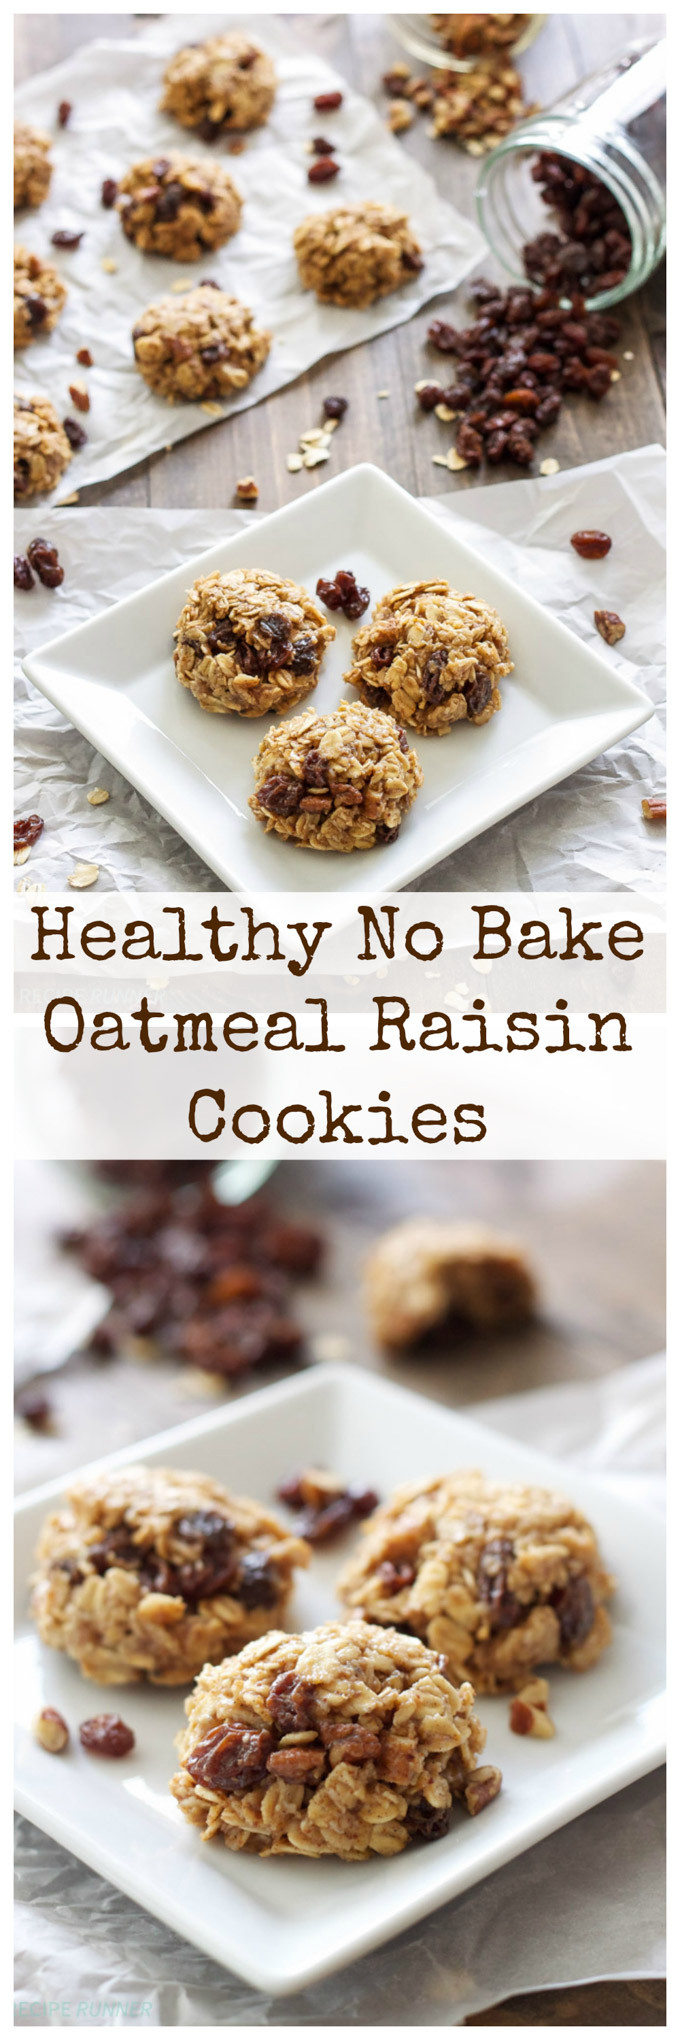 Healthy Oatmeal Raisin Cookies Recipe  Healthy No Bake Oatmeal Raisin Cookies Recipe Runner